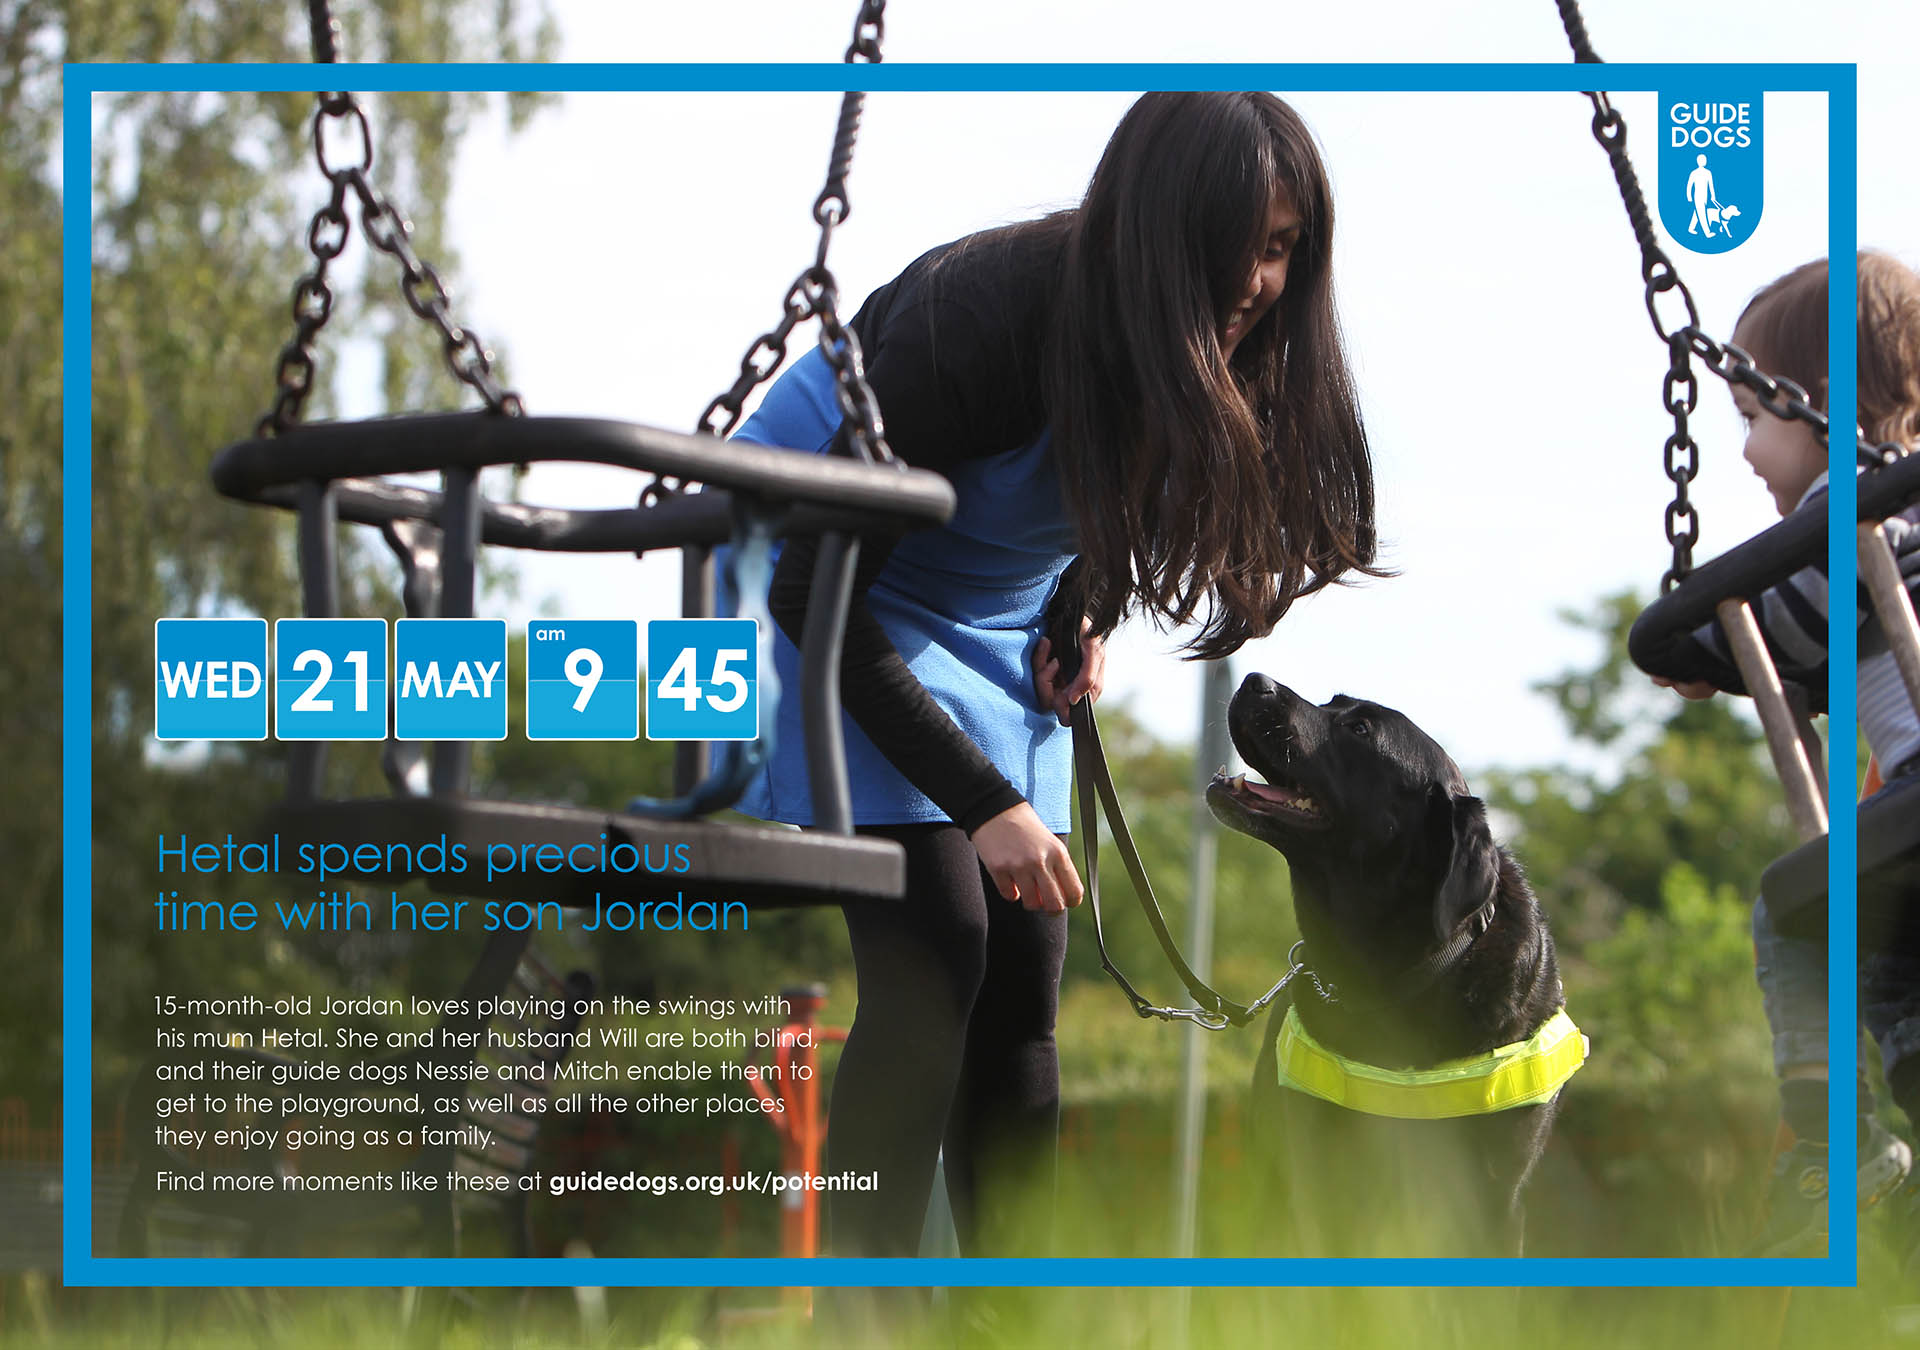 Simon_GuideDogs_Swings